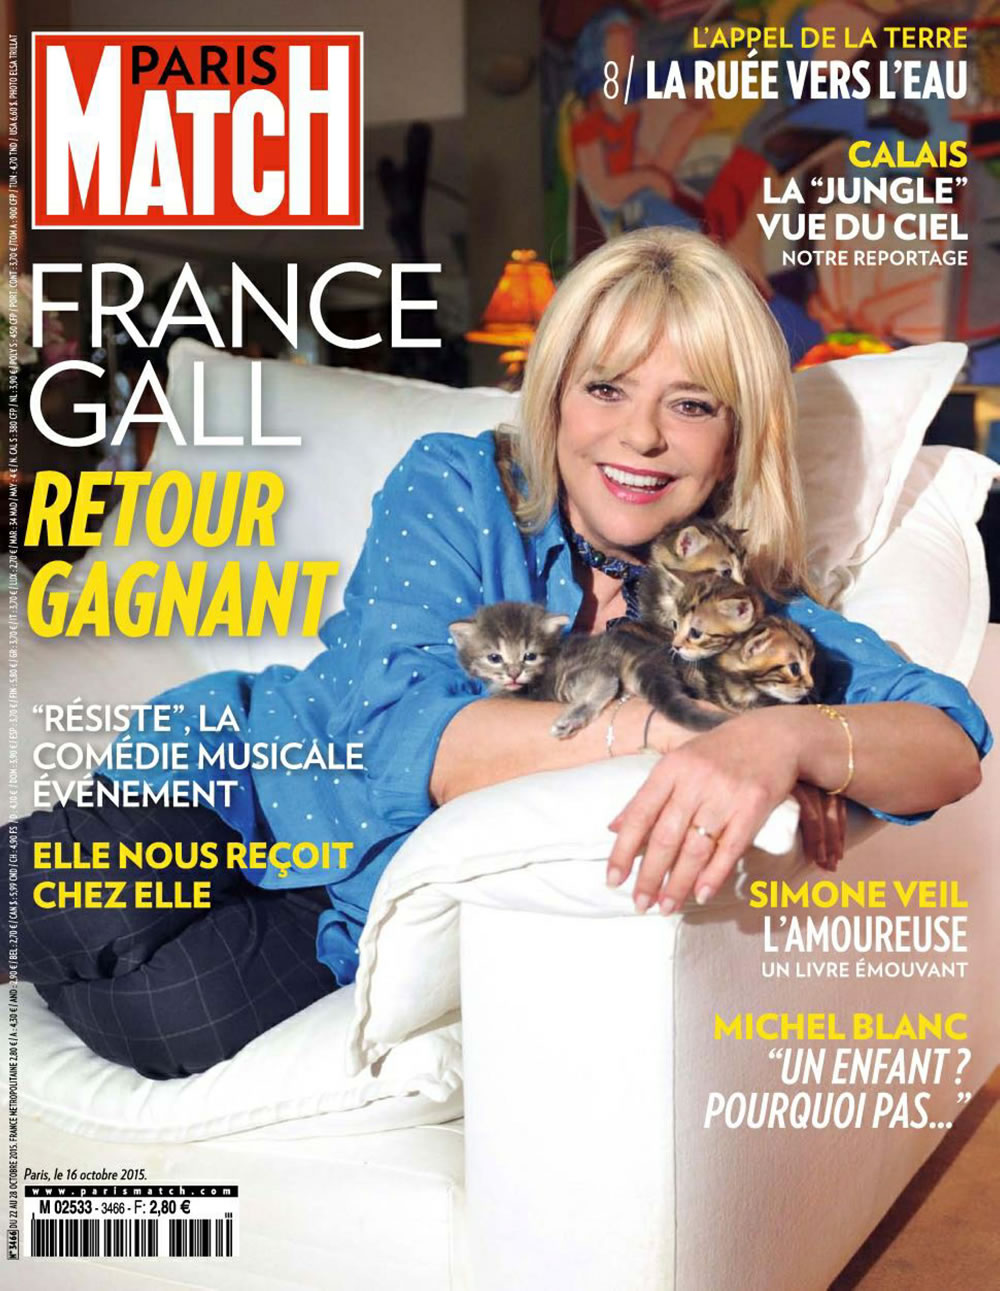 Paris Match - 22/10/2015